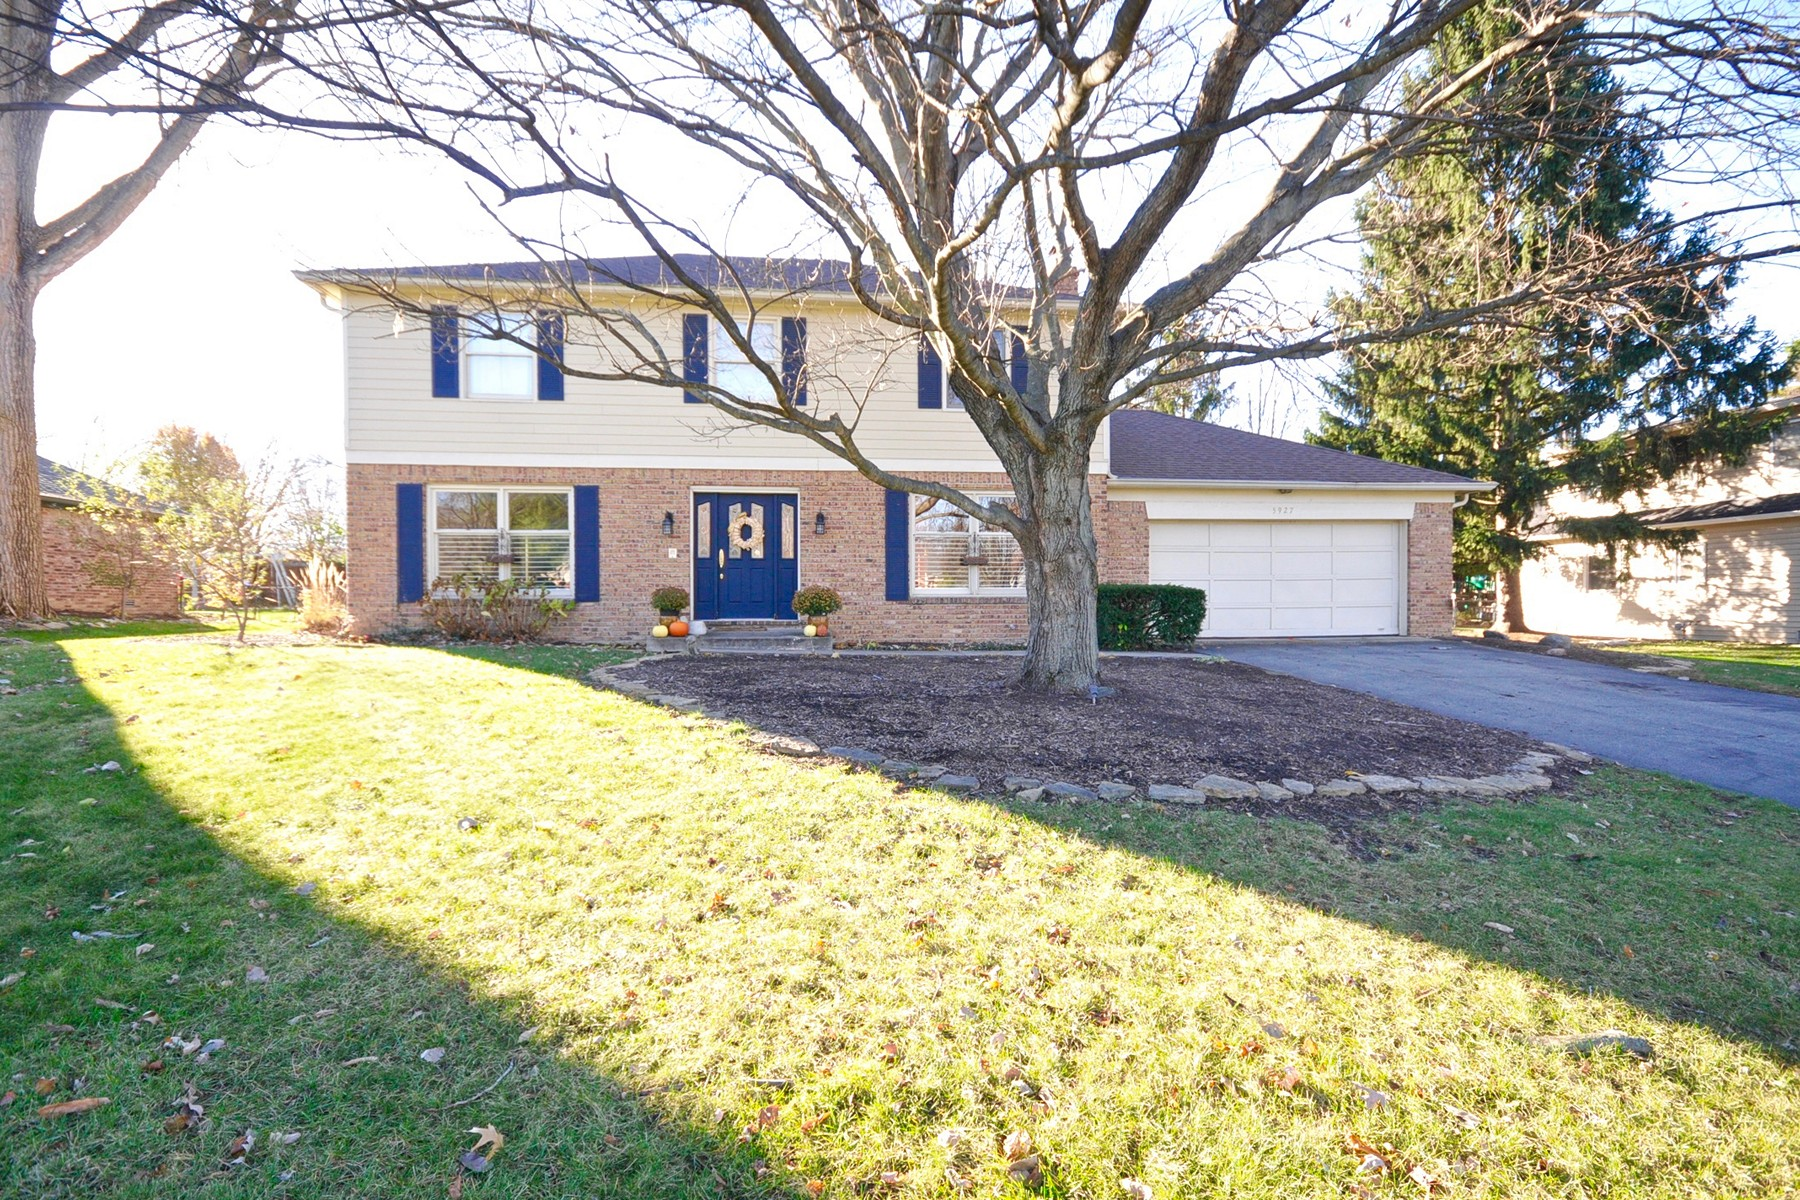 Single Family Home for Sale at Traditional Two Story Home 5927 Cape Cod Court Indianapolis, Indiana 46250 United States